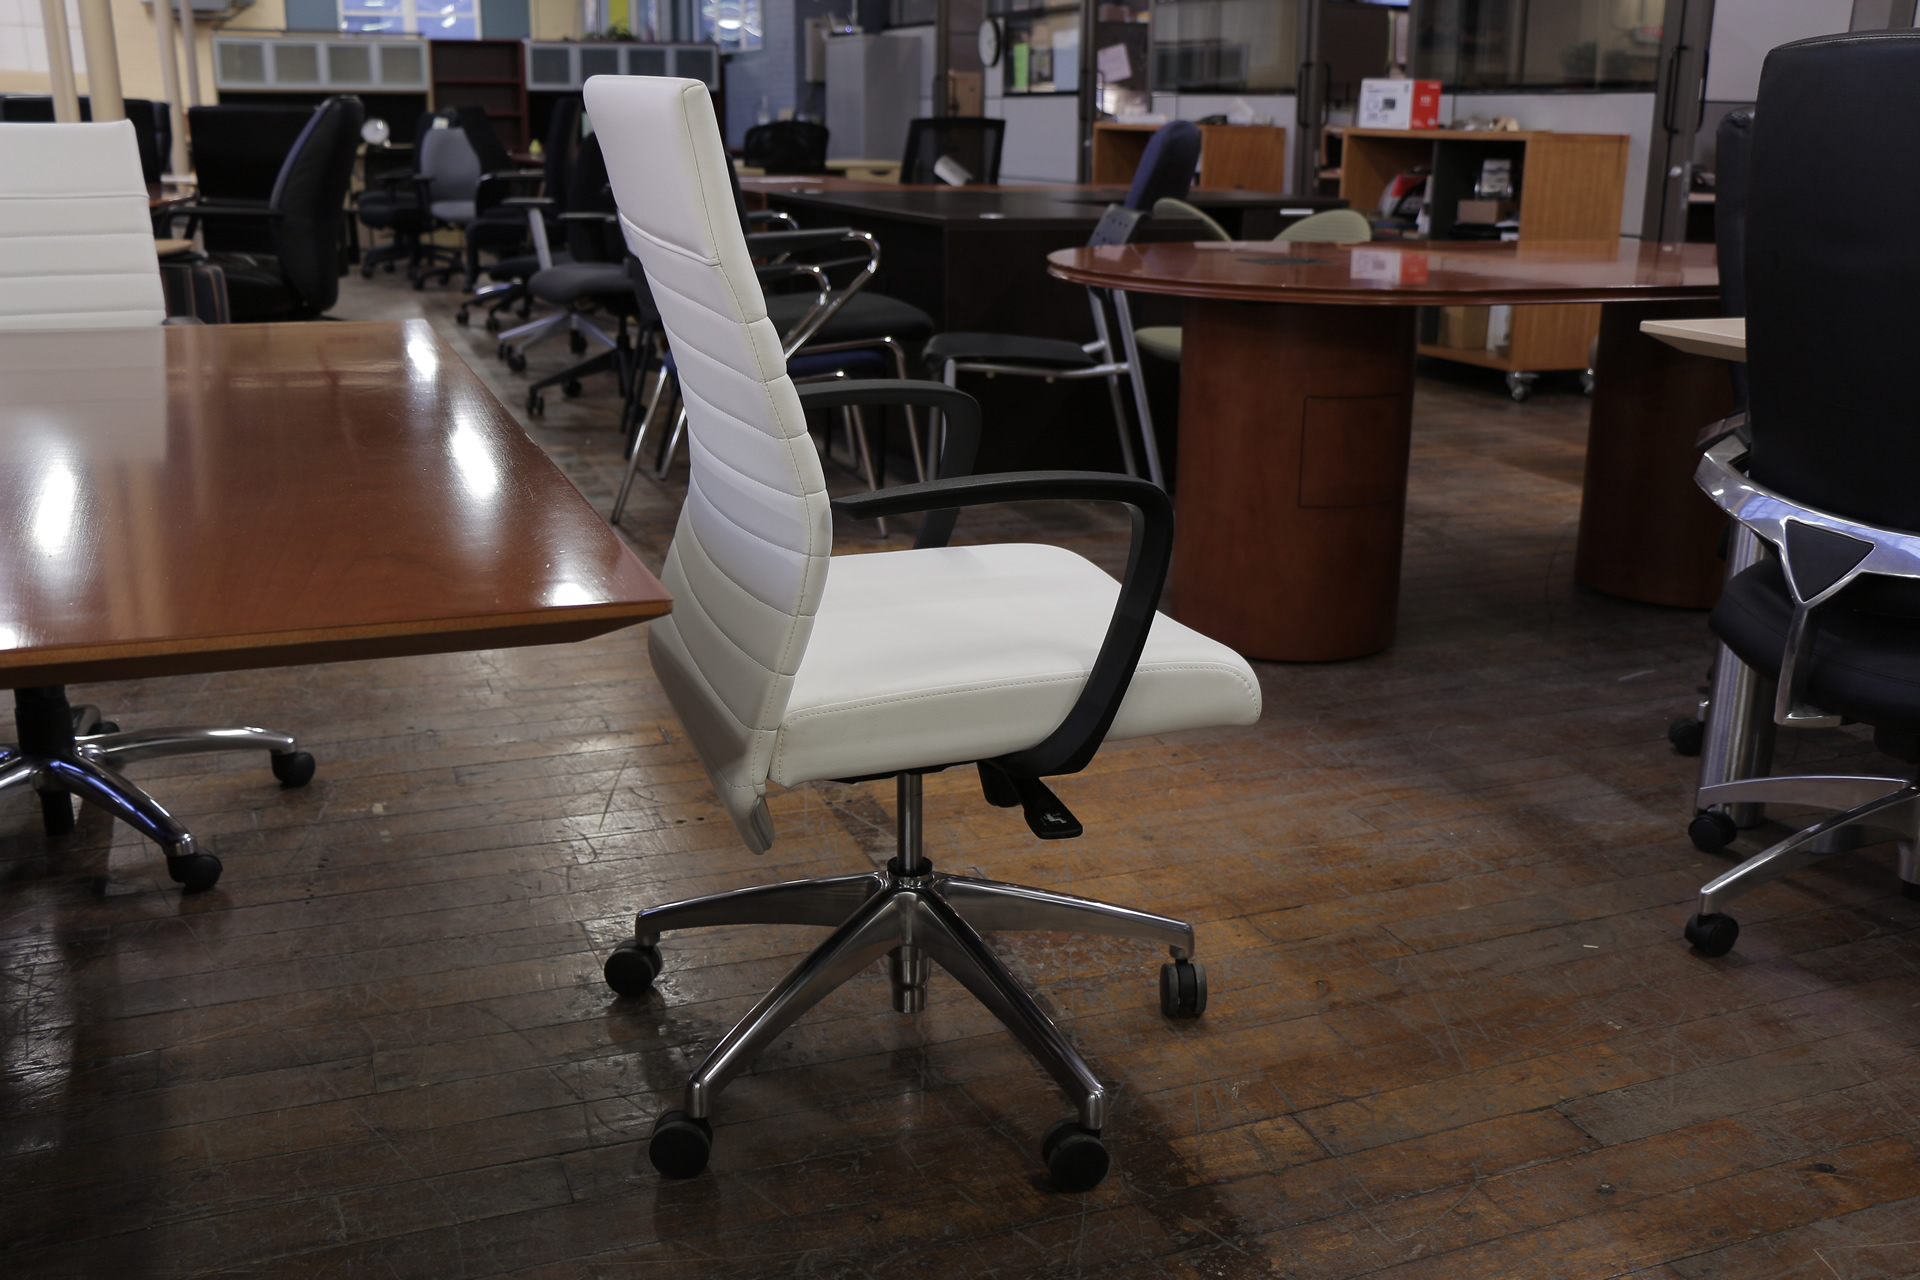 peartreeofficefurniture_peartreeofficefurniture_peartreeofficefurniture_compel-maxim-chairs-2.jpg